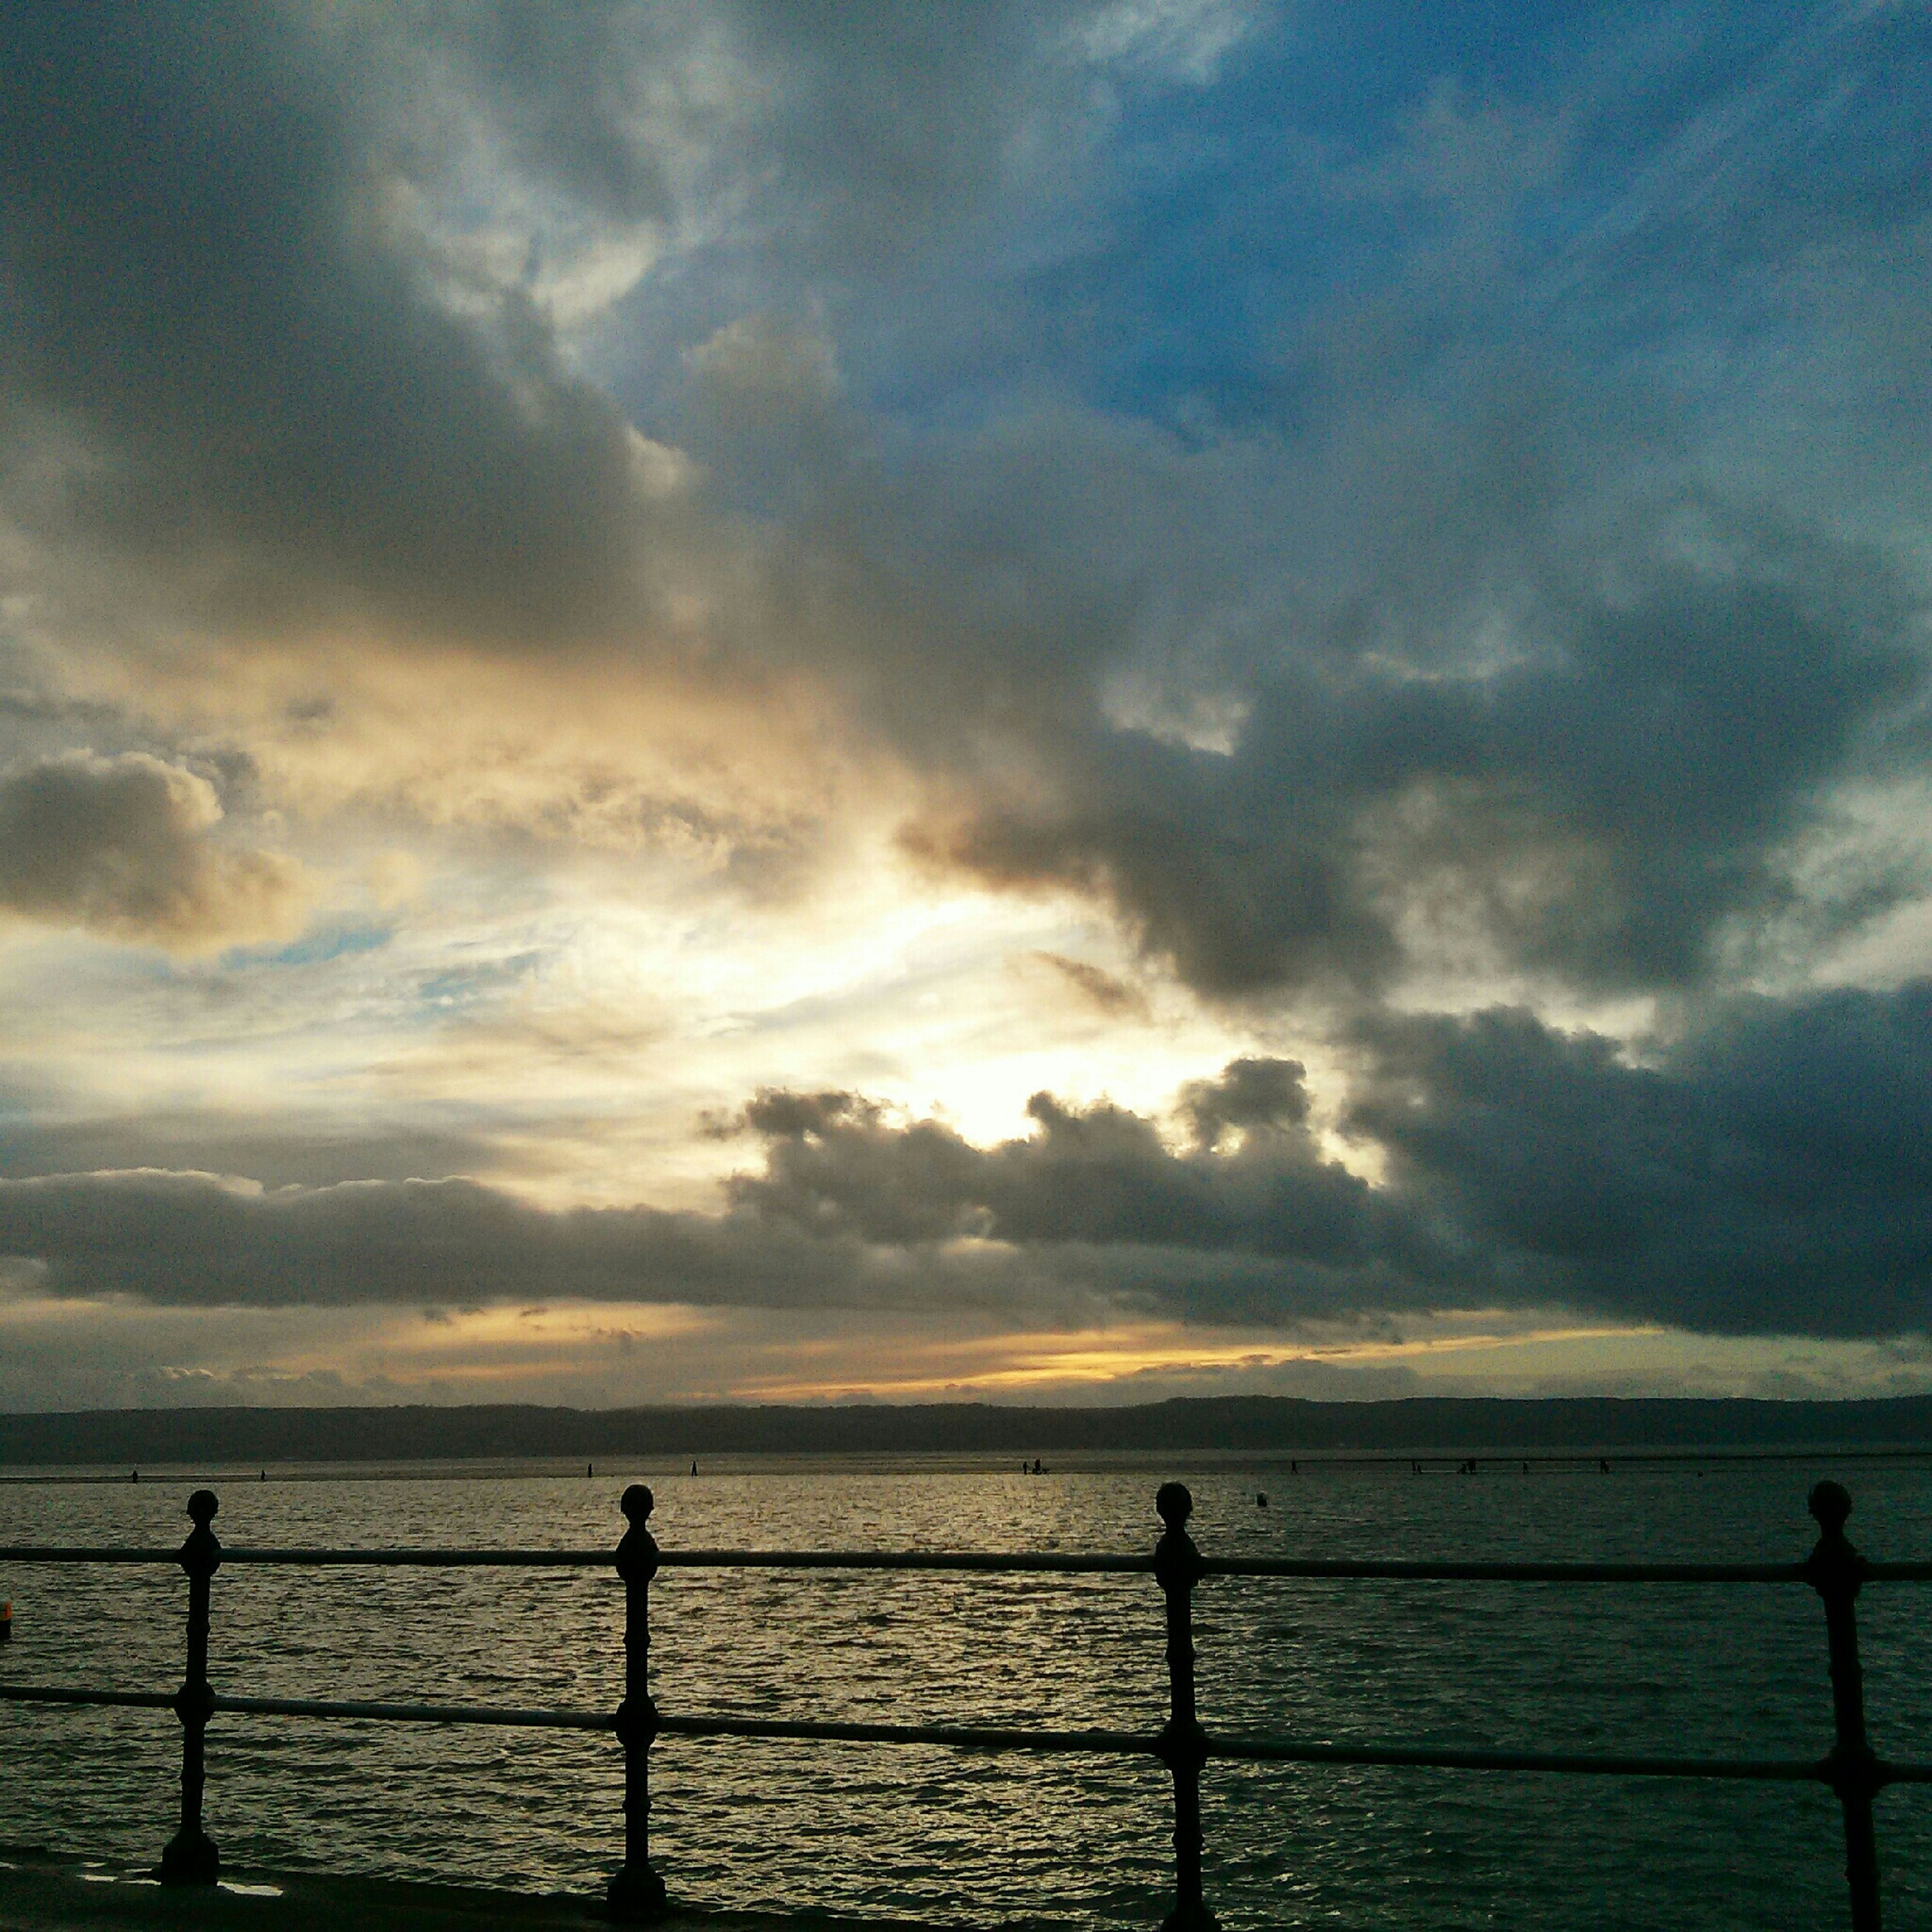 sea, water, sky, horizon over water, sunset, scenics, cloud - sky, silhouette, tranquility, beauty in nature, tranquil scene, nature, railing, idyllic, cloud, cloudy, beach, shore, pier, outdoors